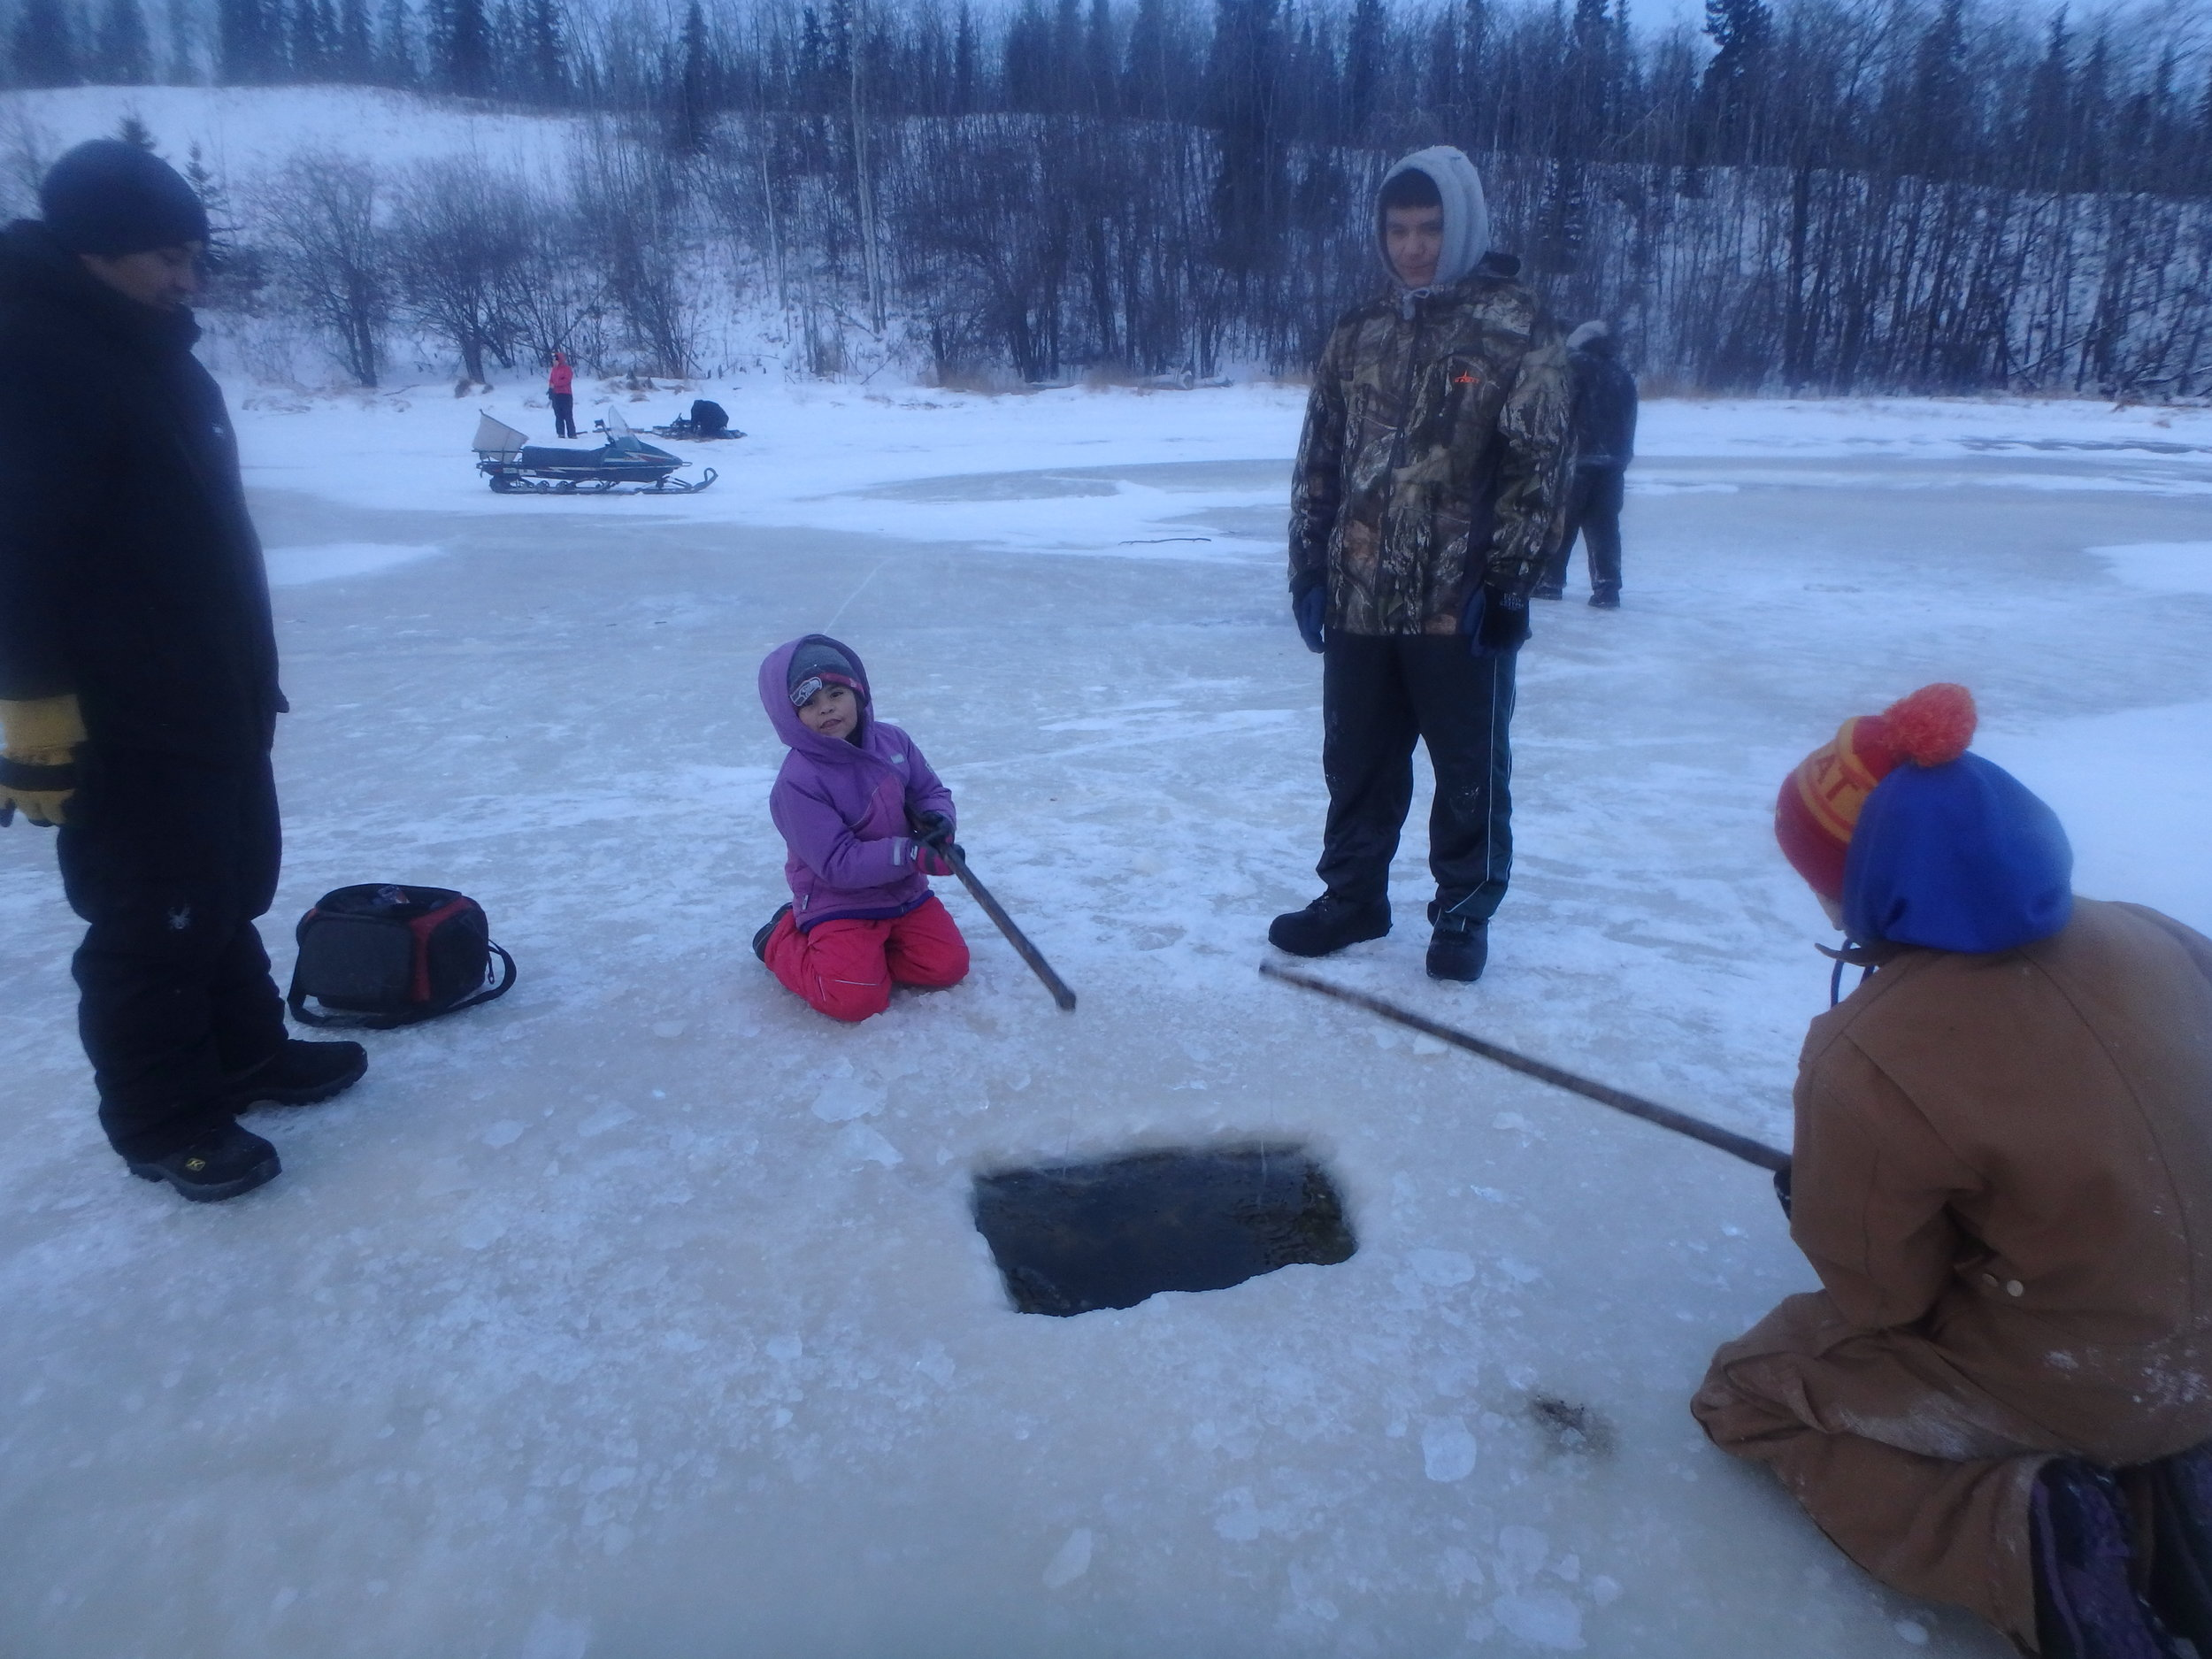 Students learned to use a hand auger to drill holes, the art of using a lure to catch fish under the ice and how to start, and keep a fire to be sure everyone kept warm.